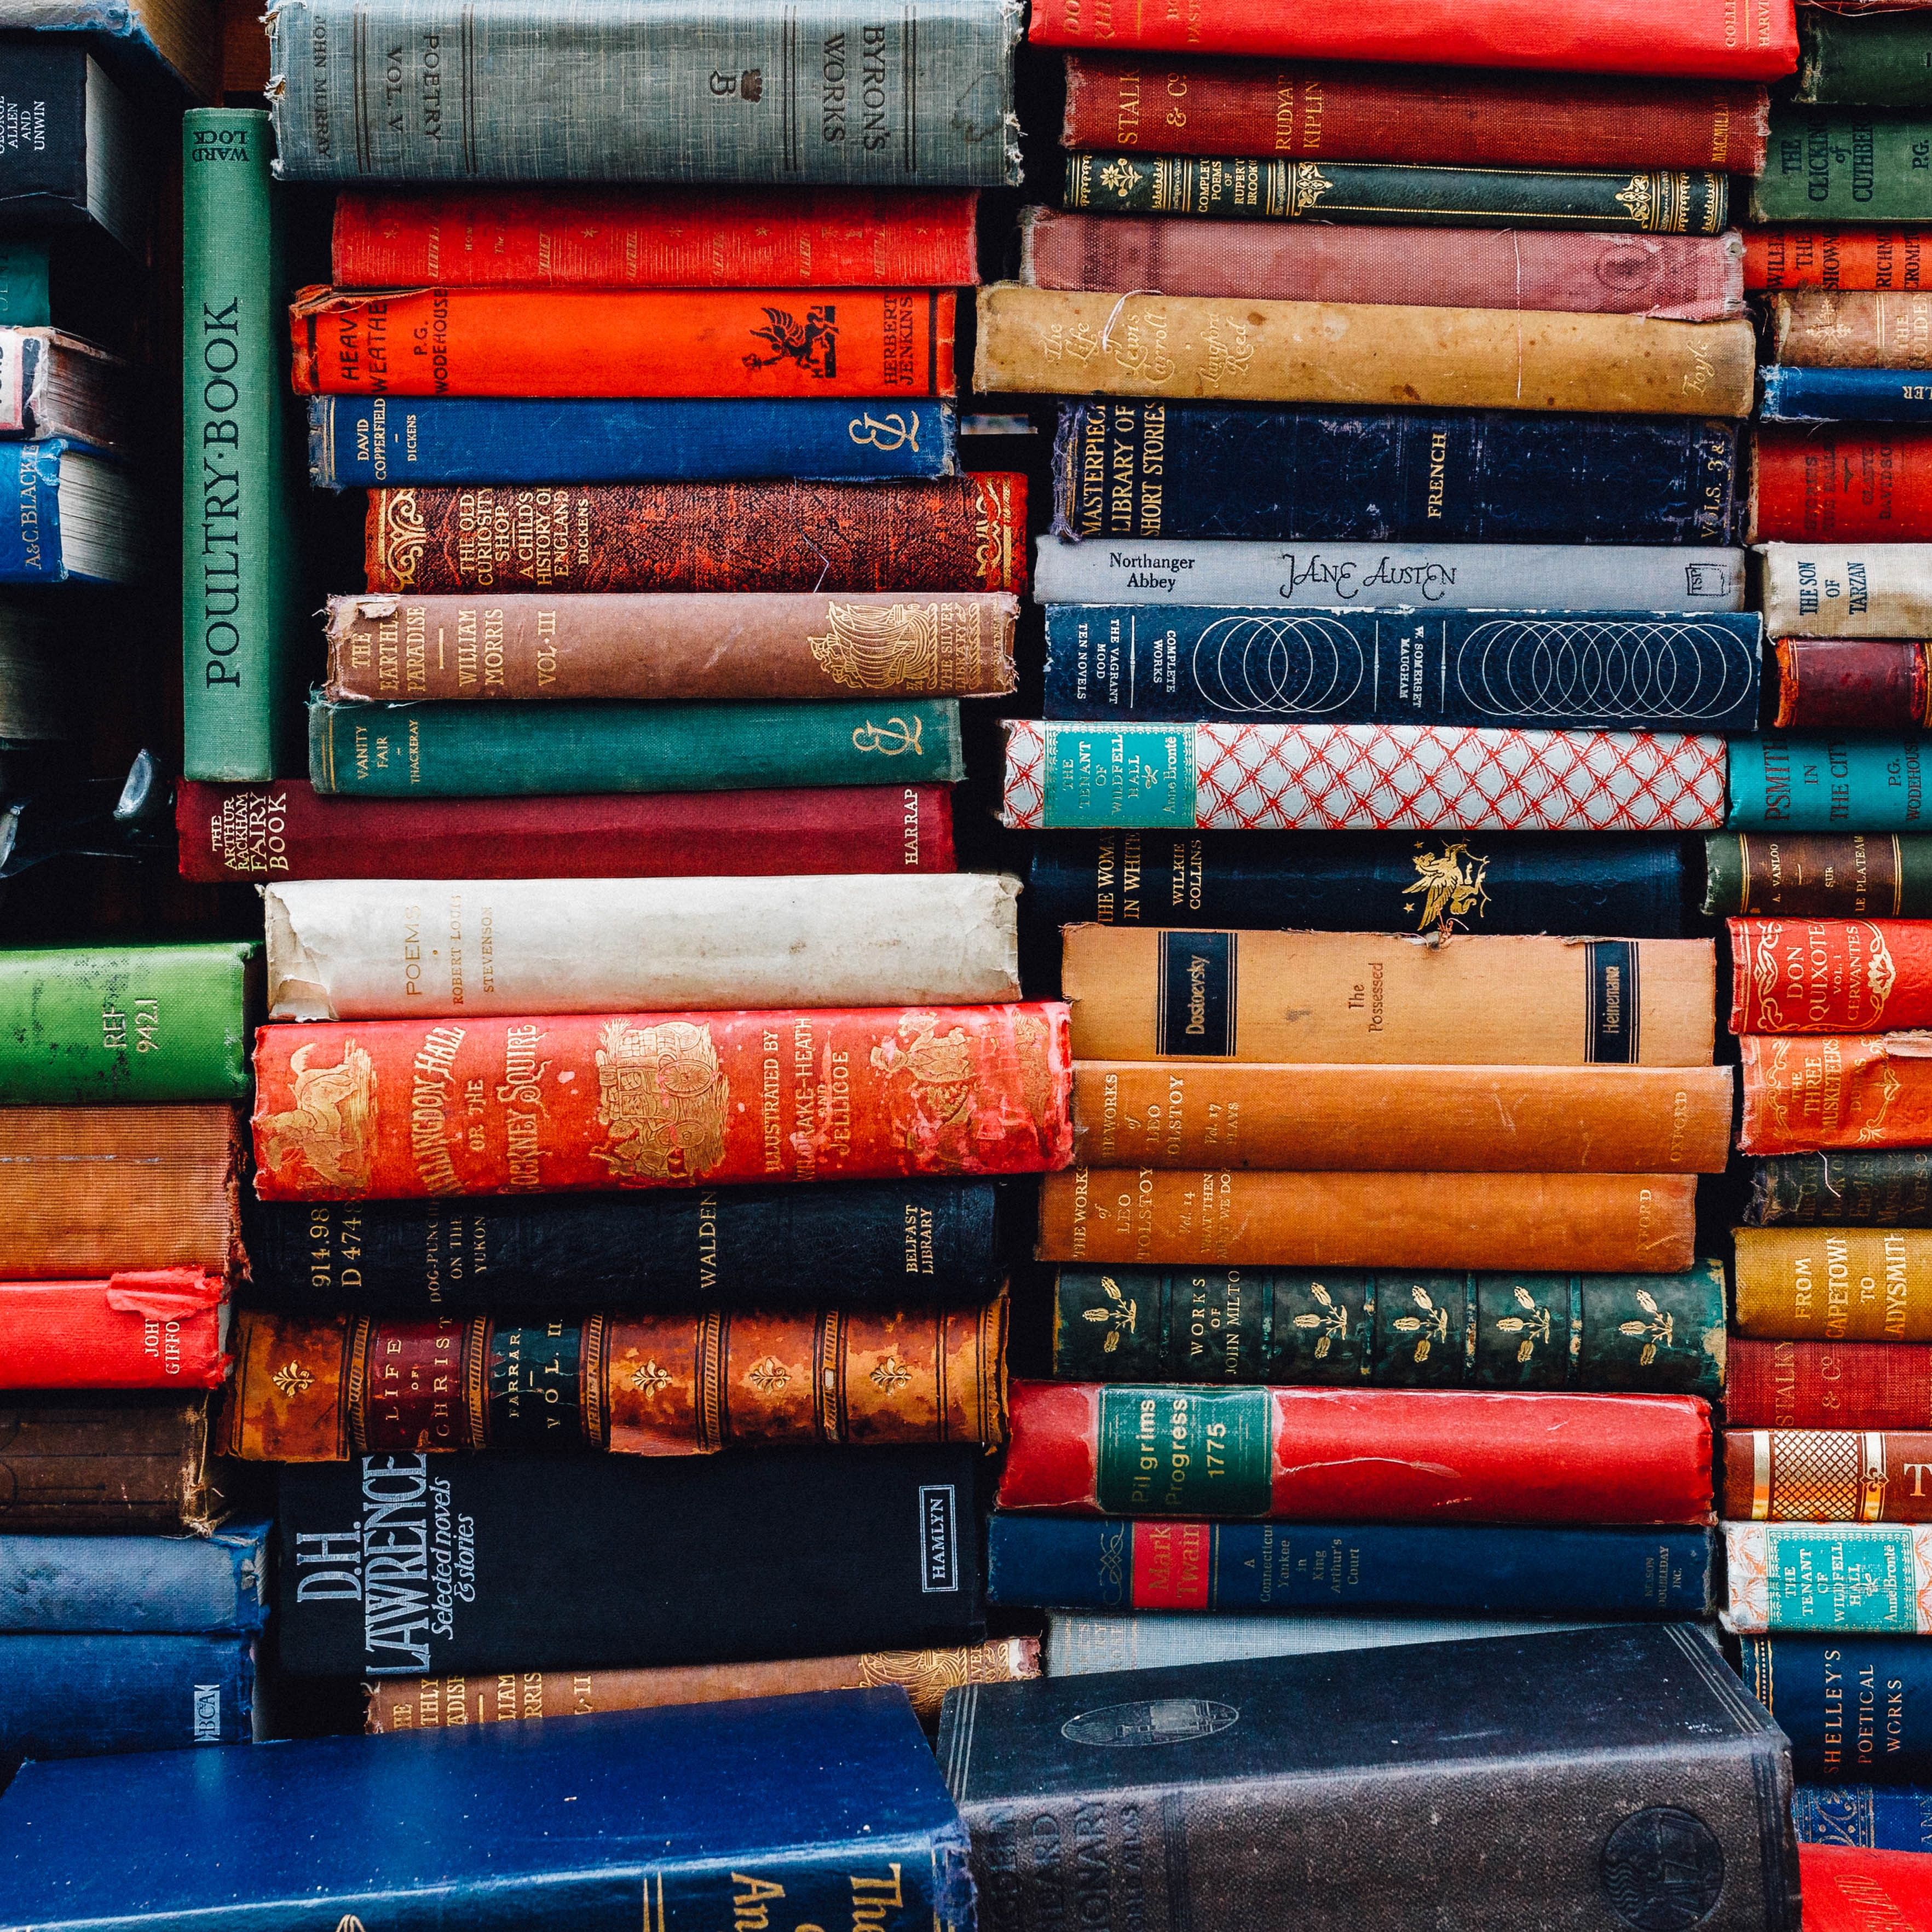 Image of books stacked on top of one another